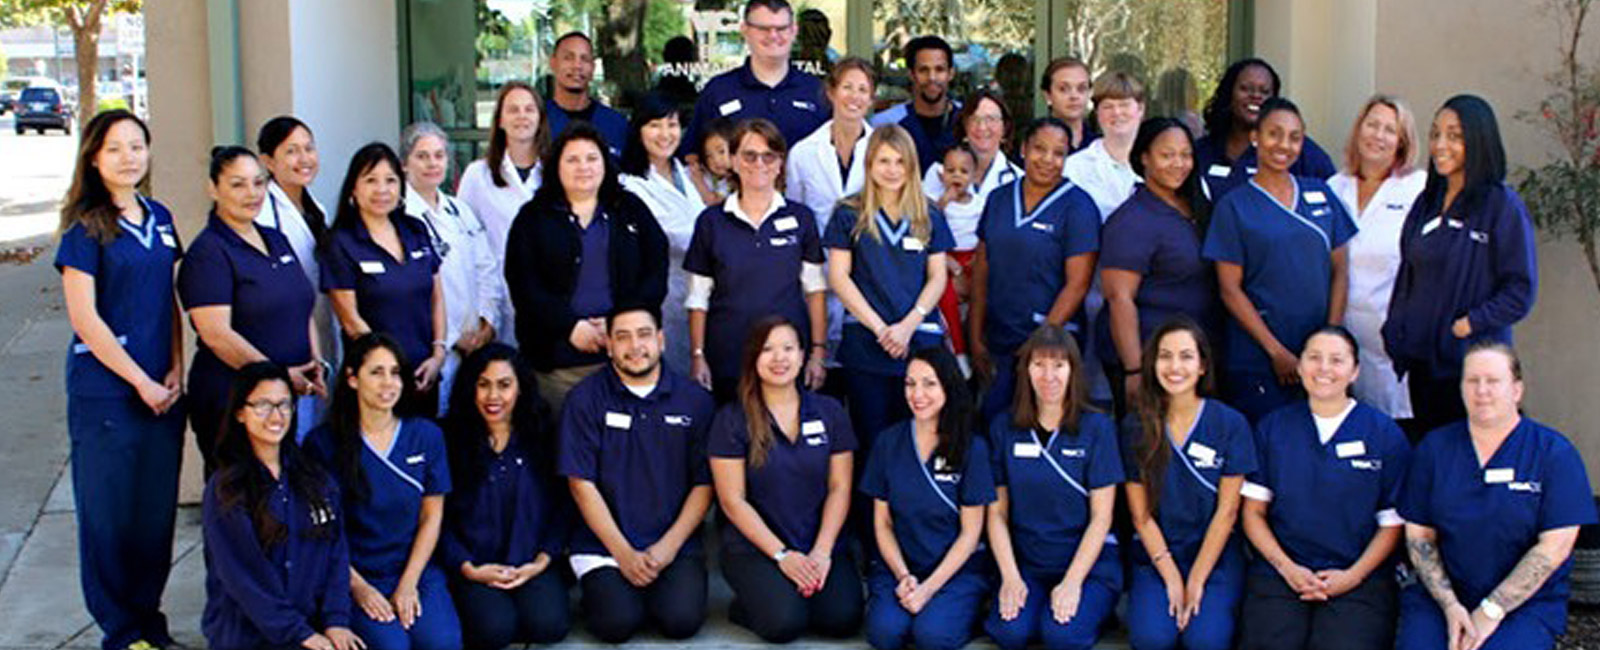 Homepage Team Picture of VCA Bay Area Animal Hospital